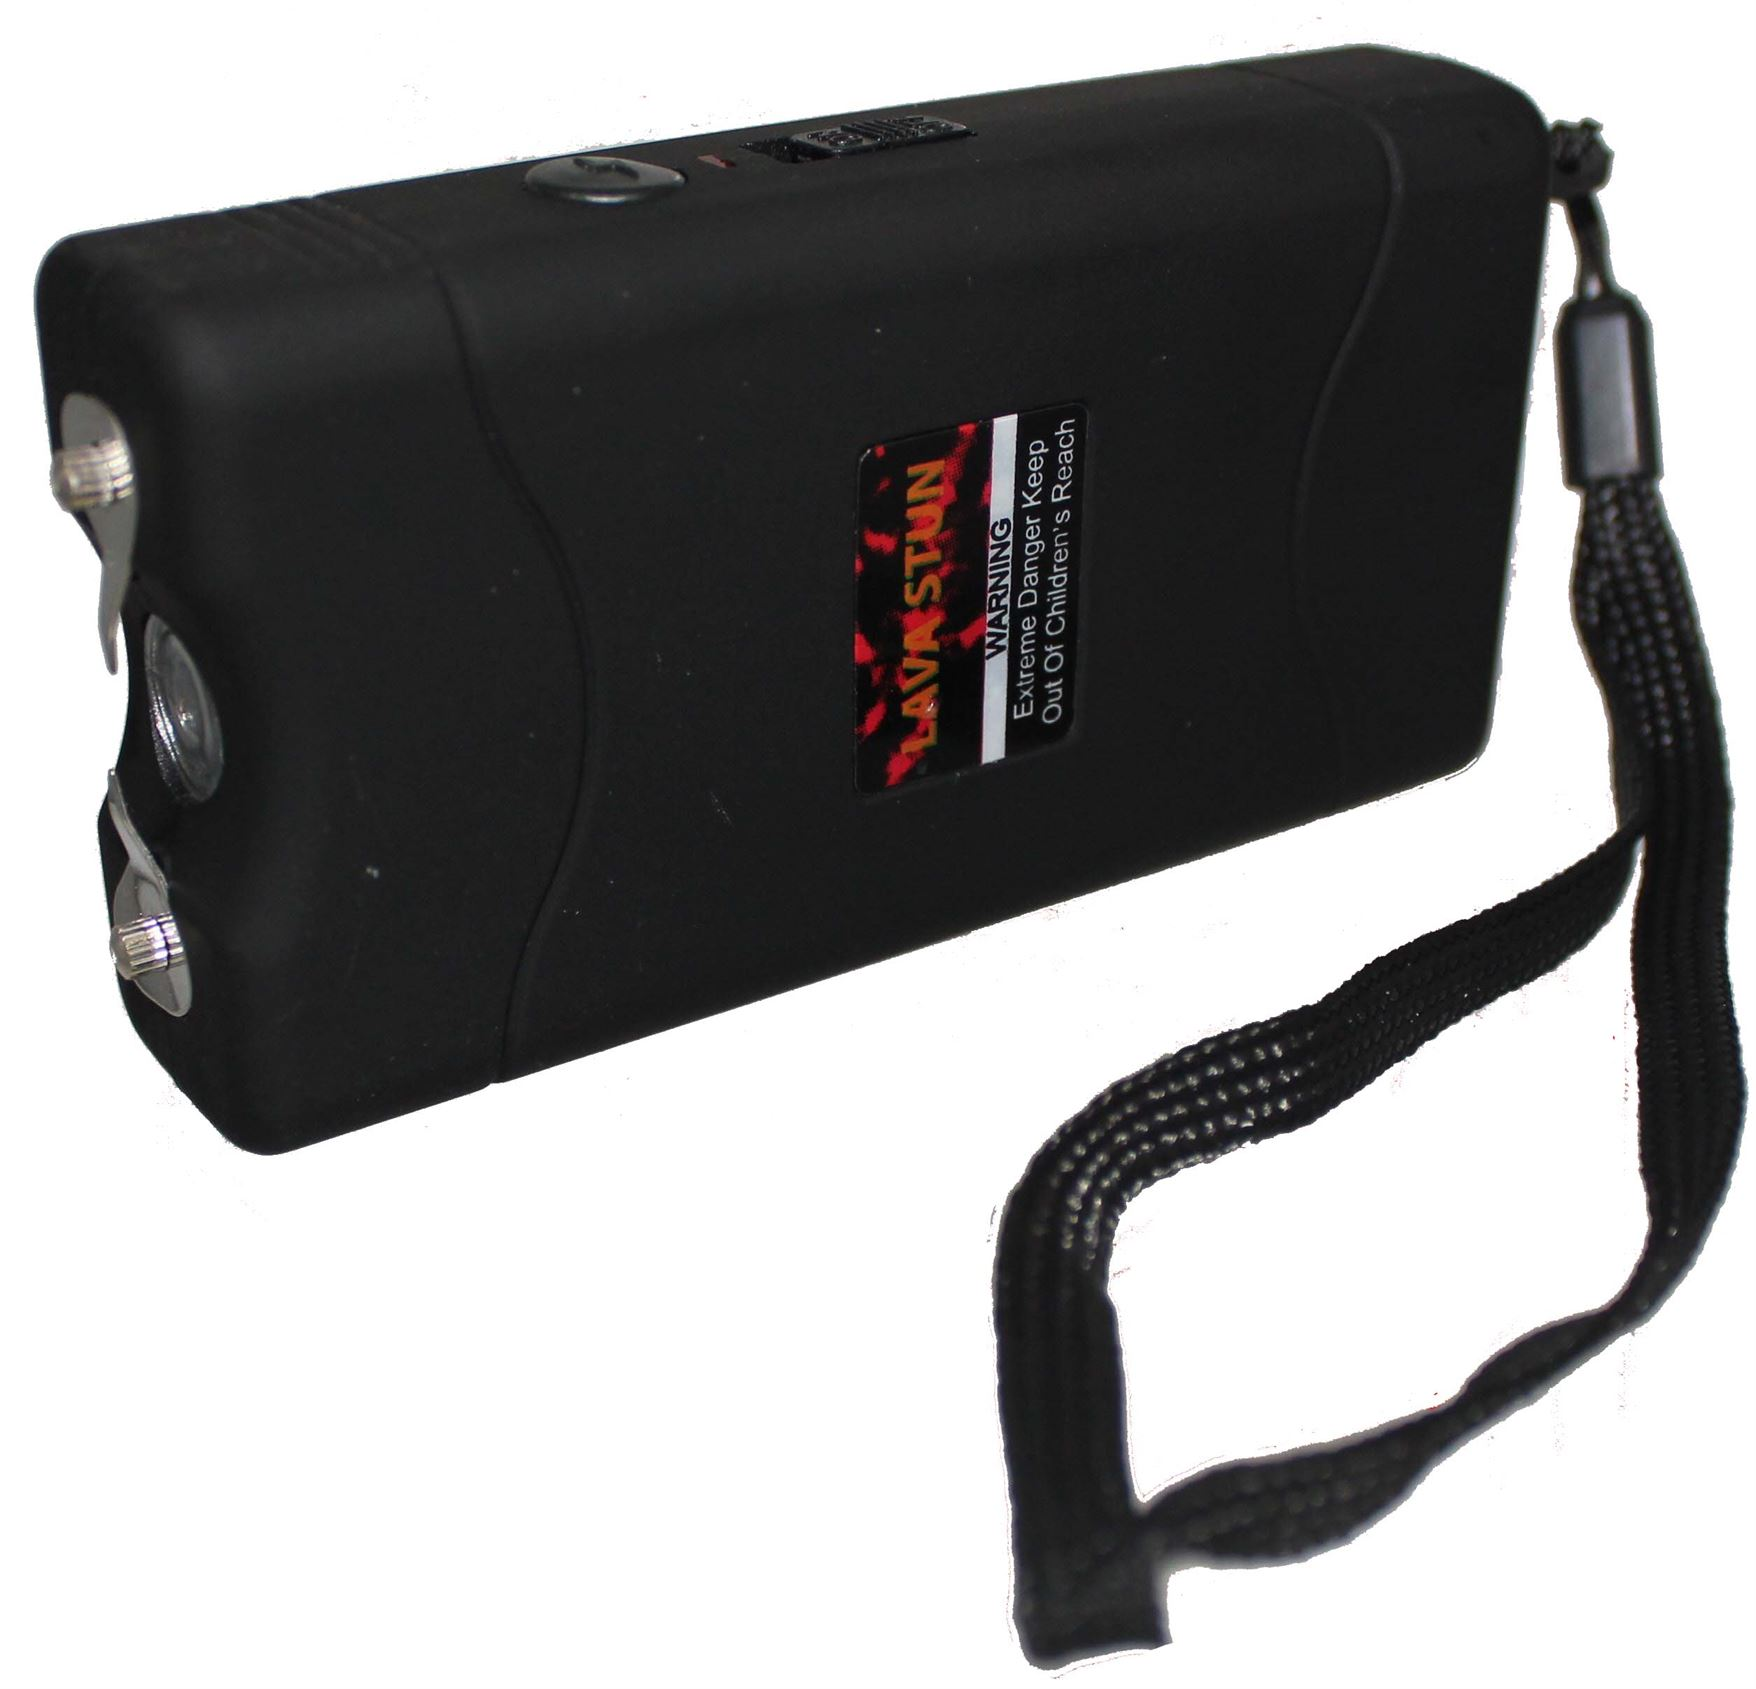 BLACK STUN GUN, 1/BX - Out of Stock